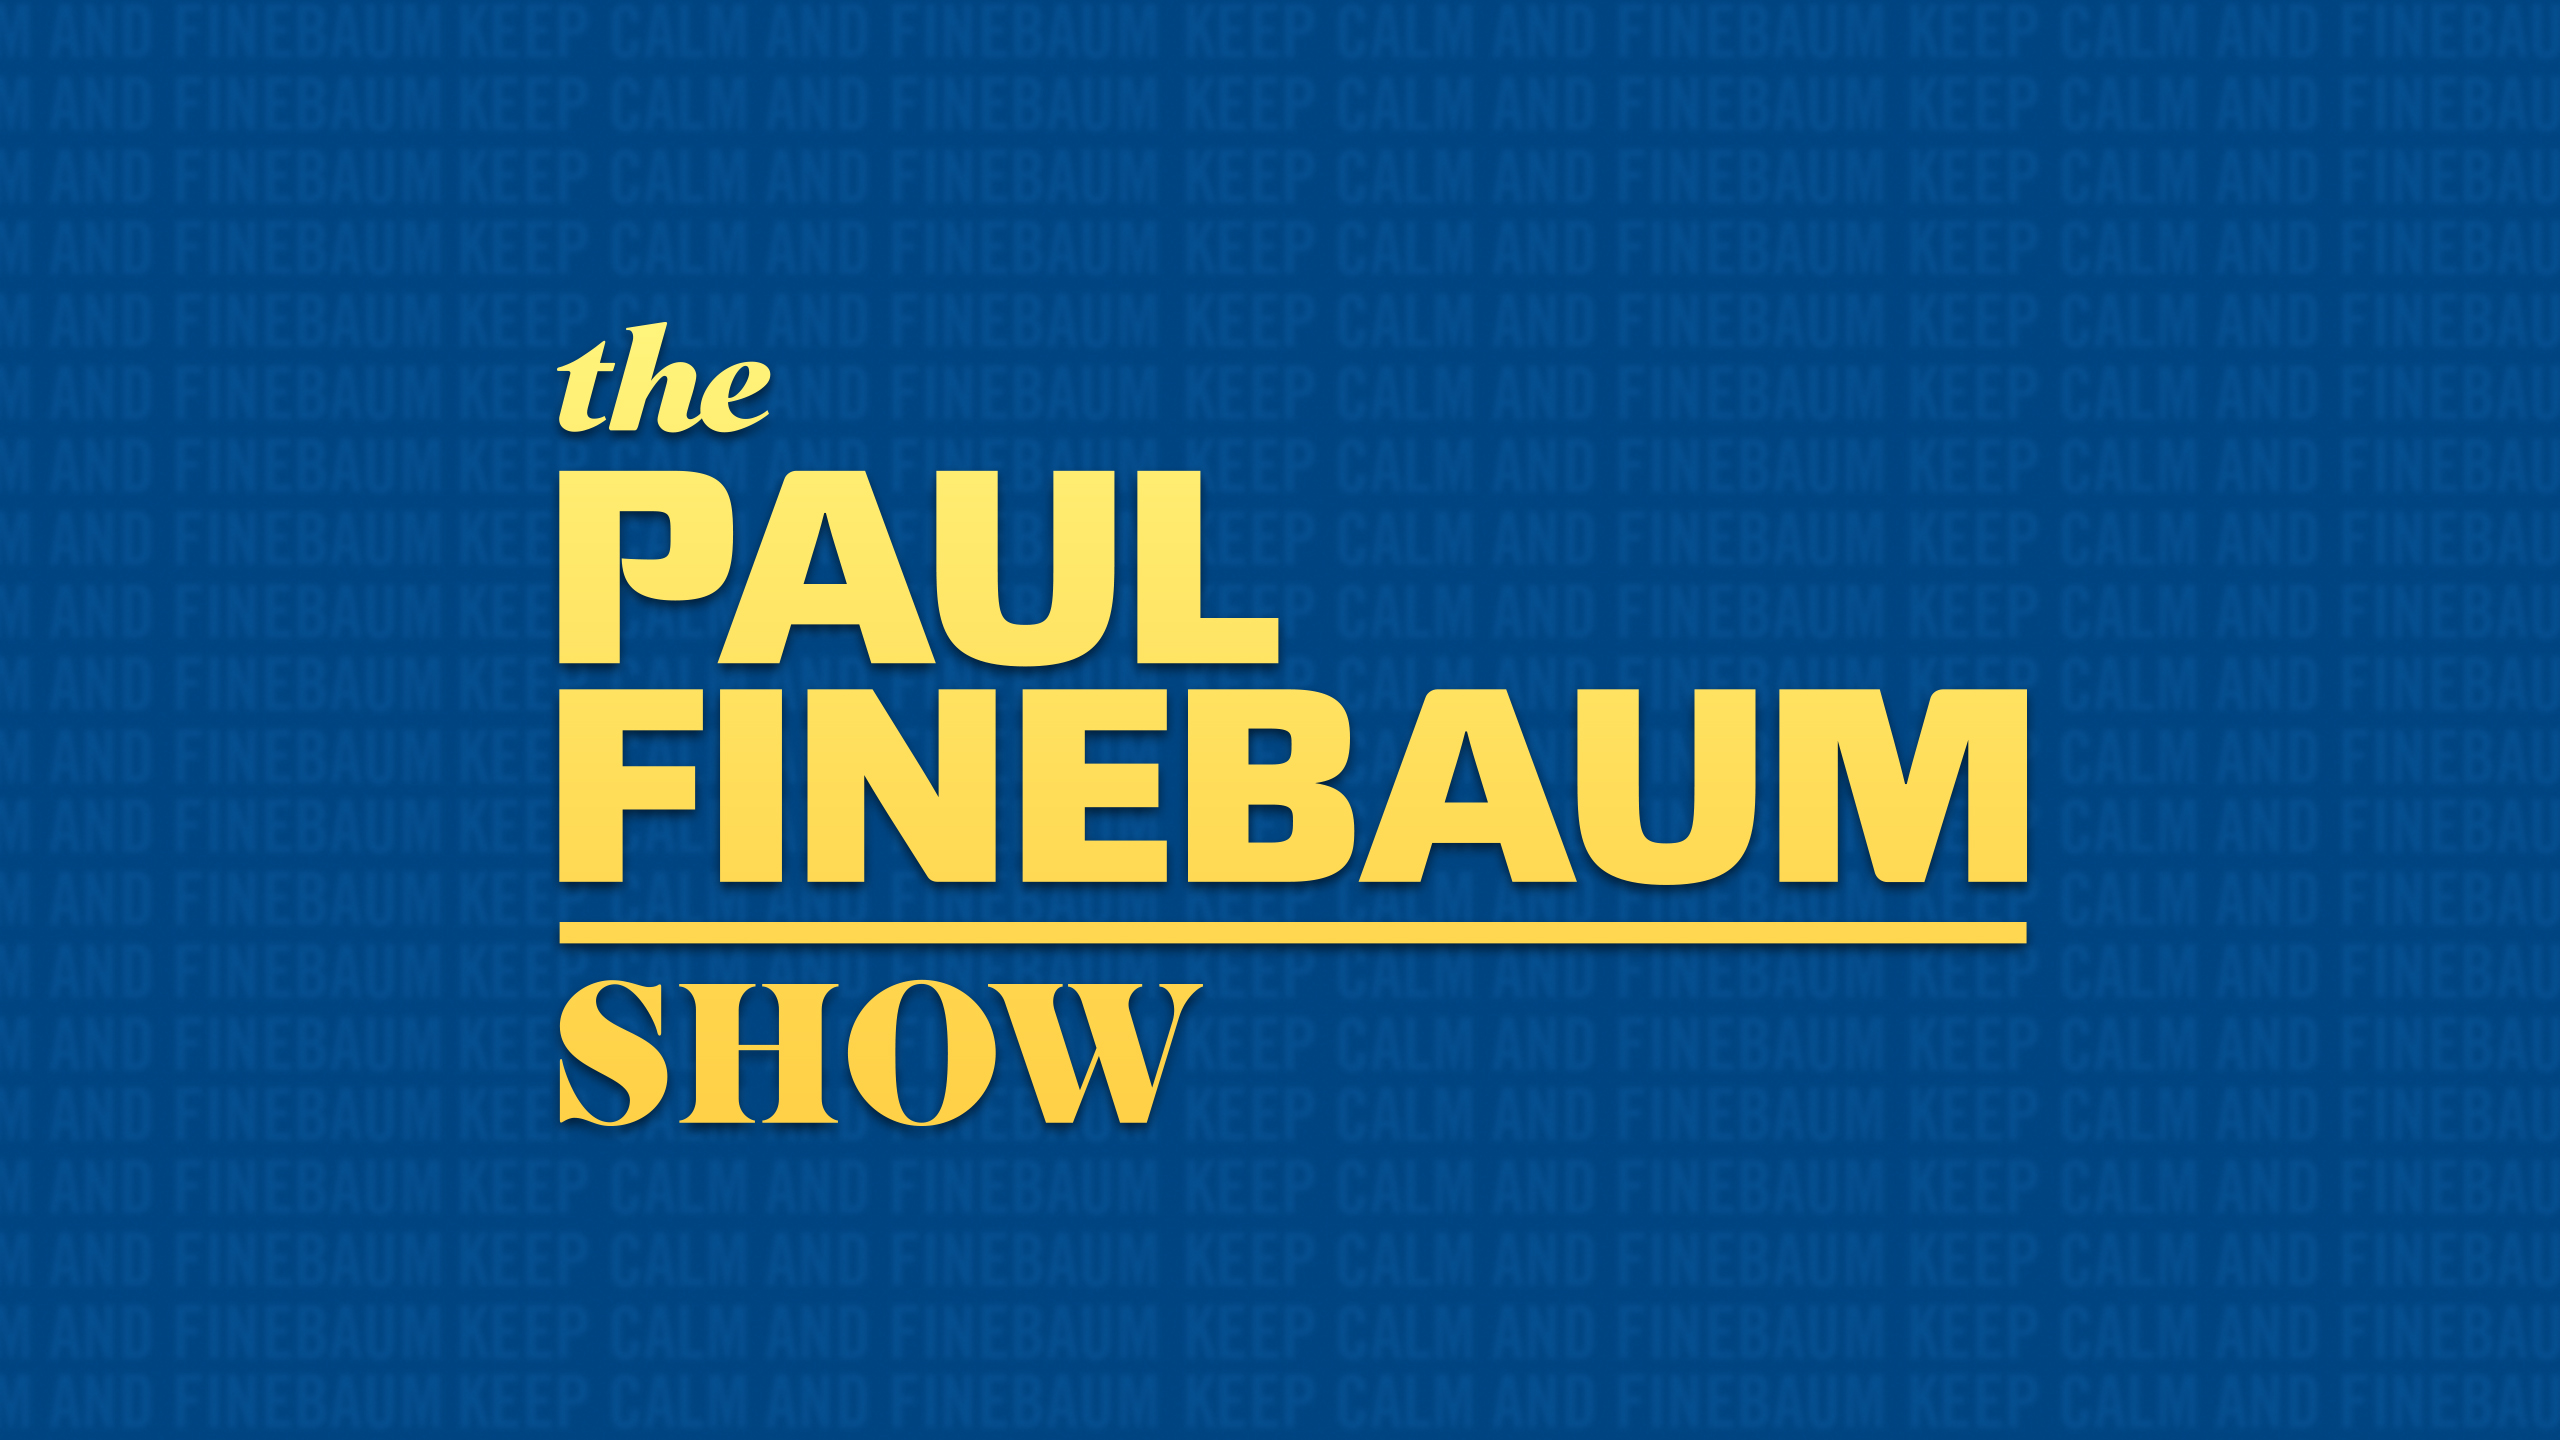 Mon, 10/15 - The Paul Finebaum Show Presented by Regions Bank